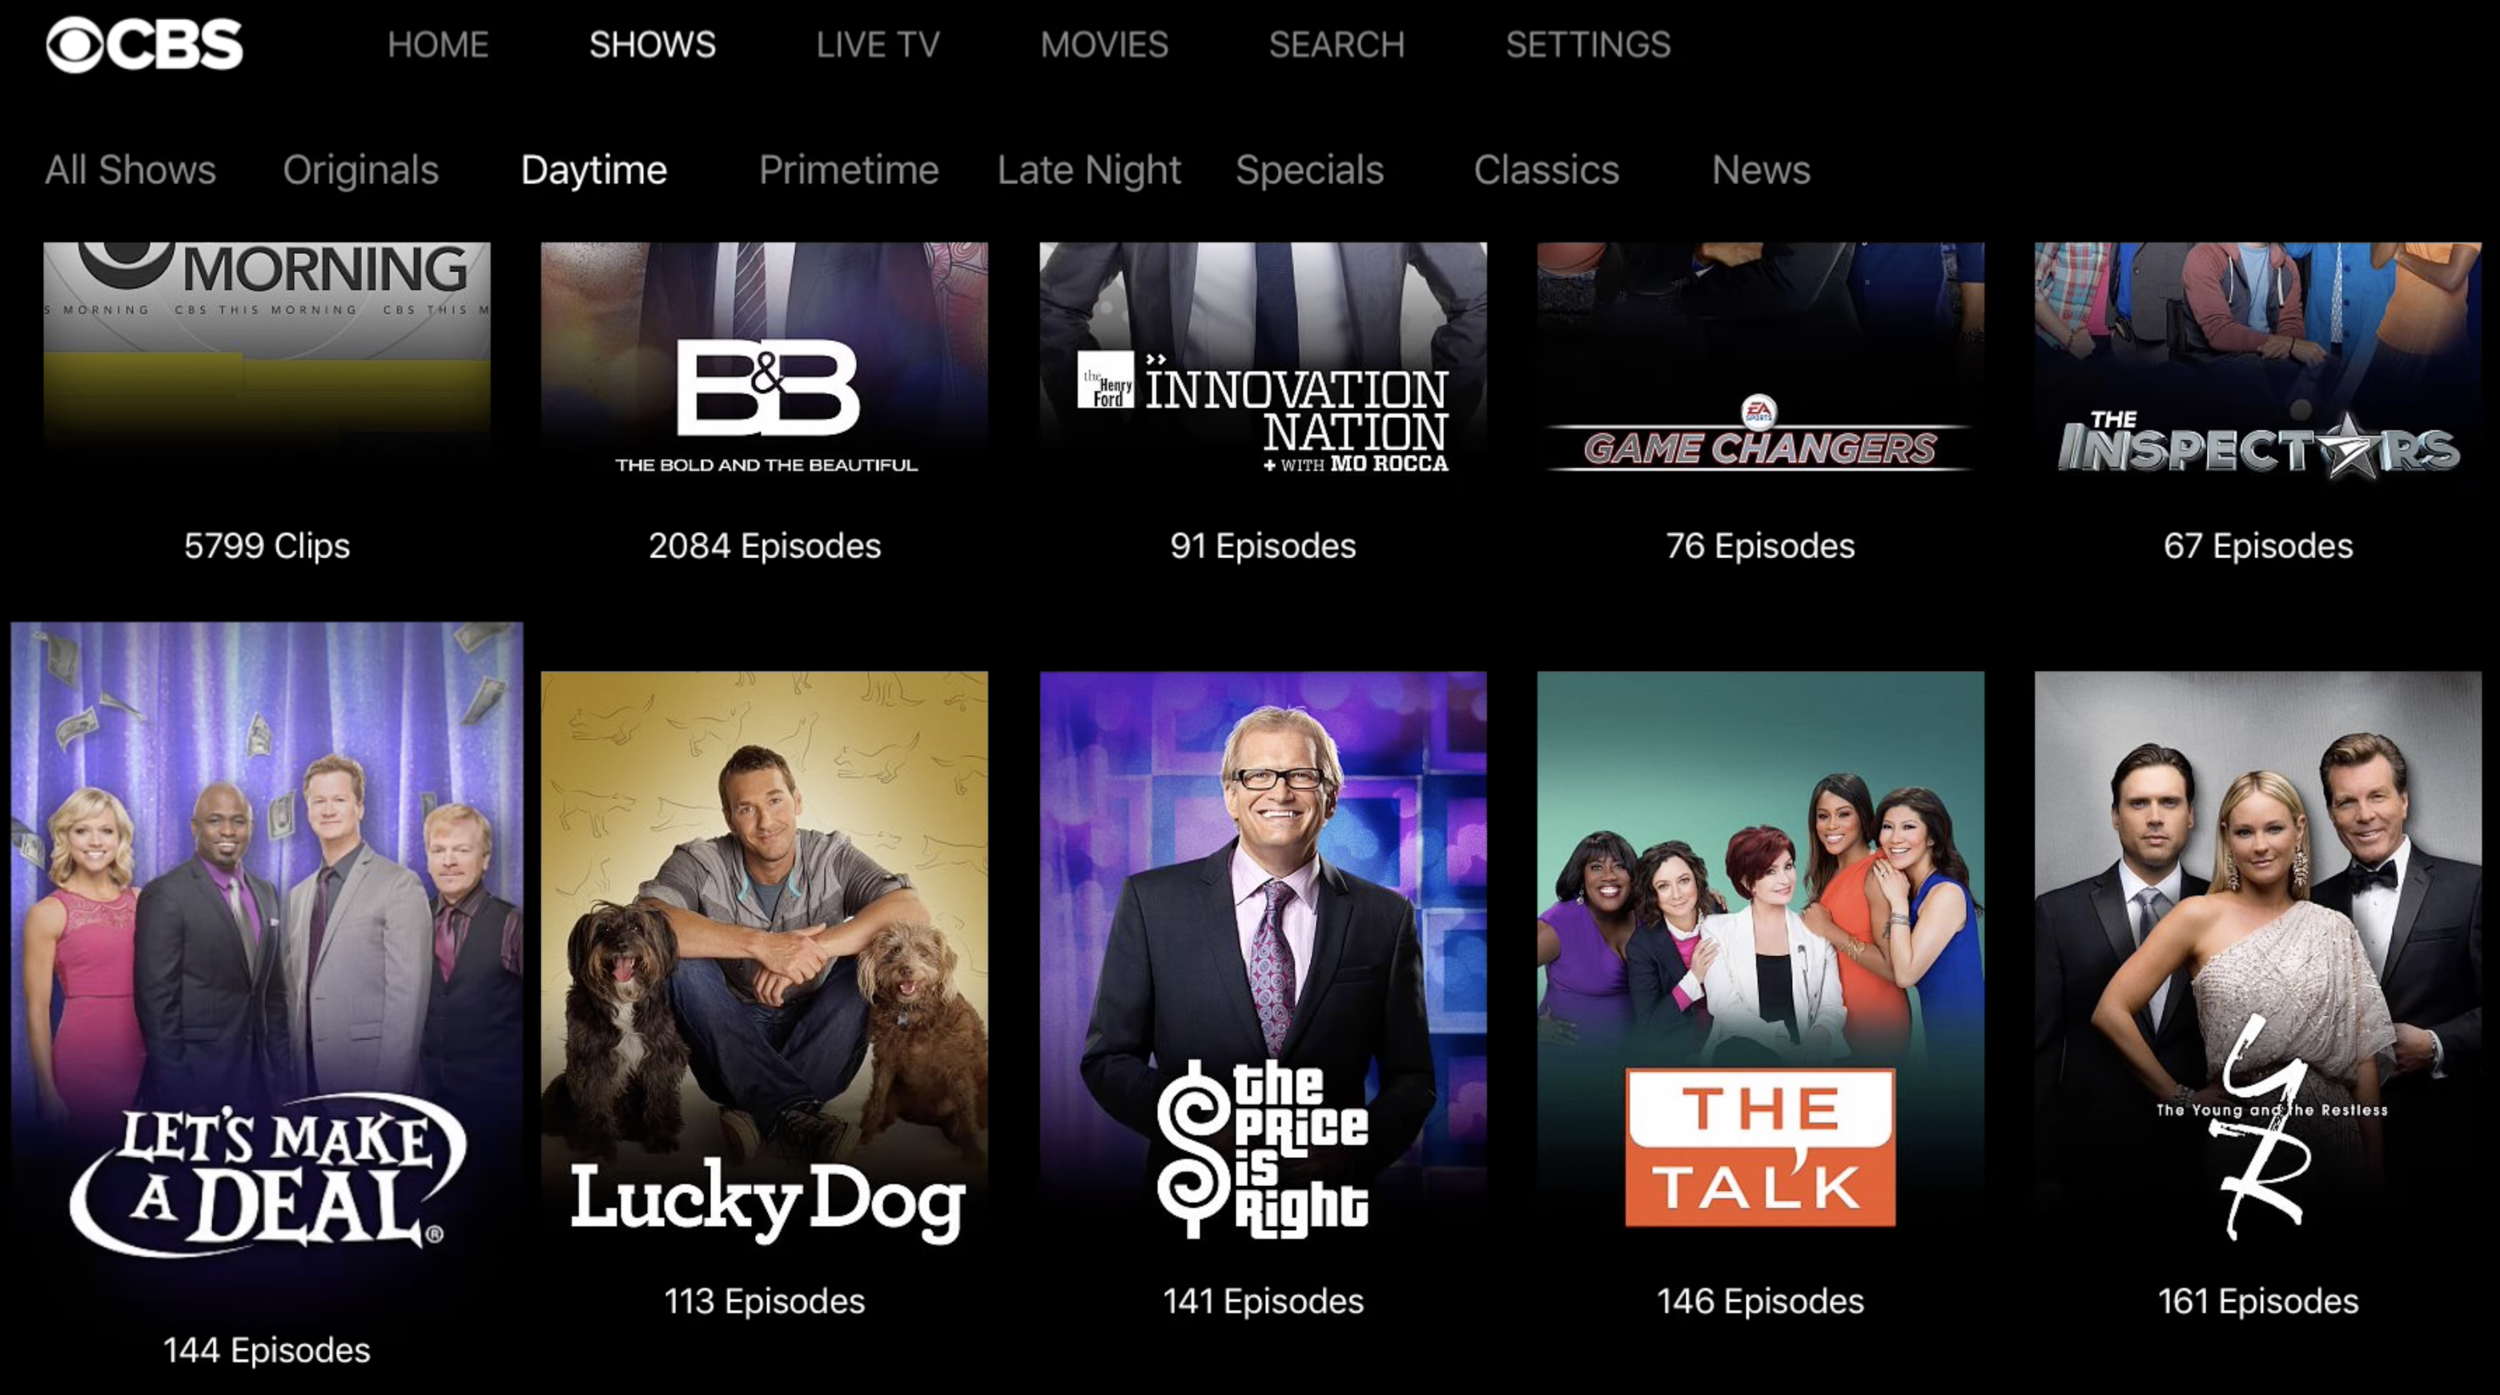 CBS All Access US Daytime Catalogue